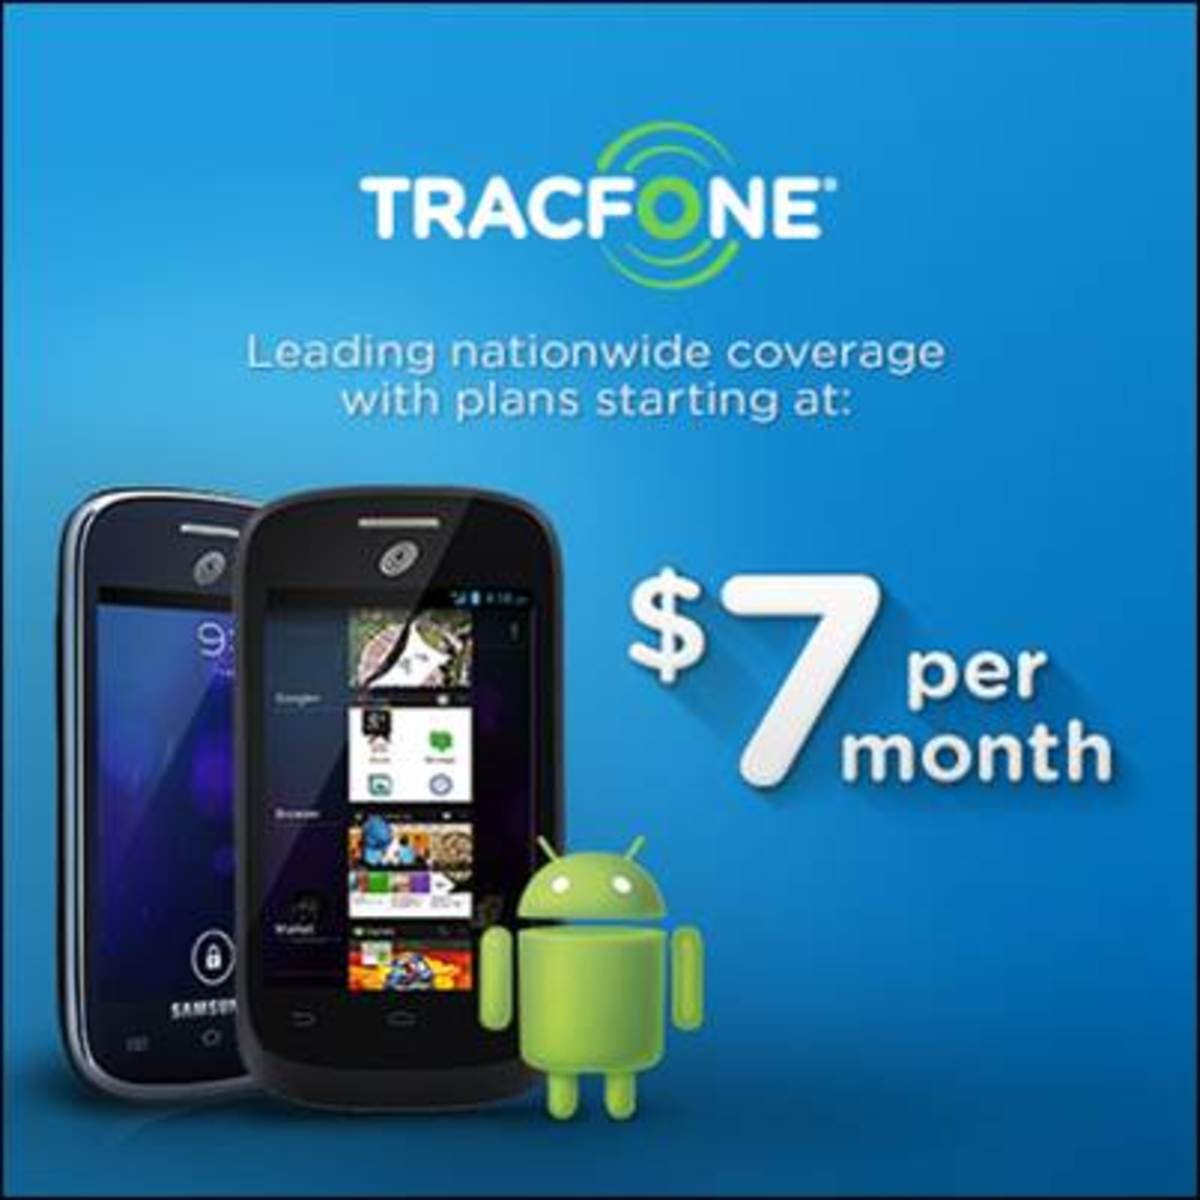 TracFone Android_$7 per month